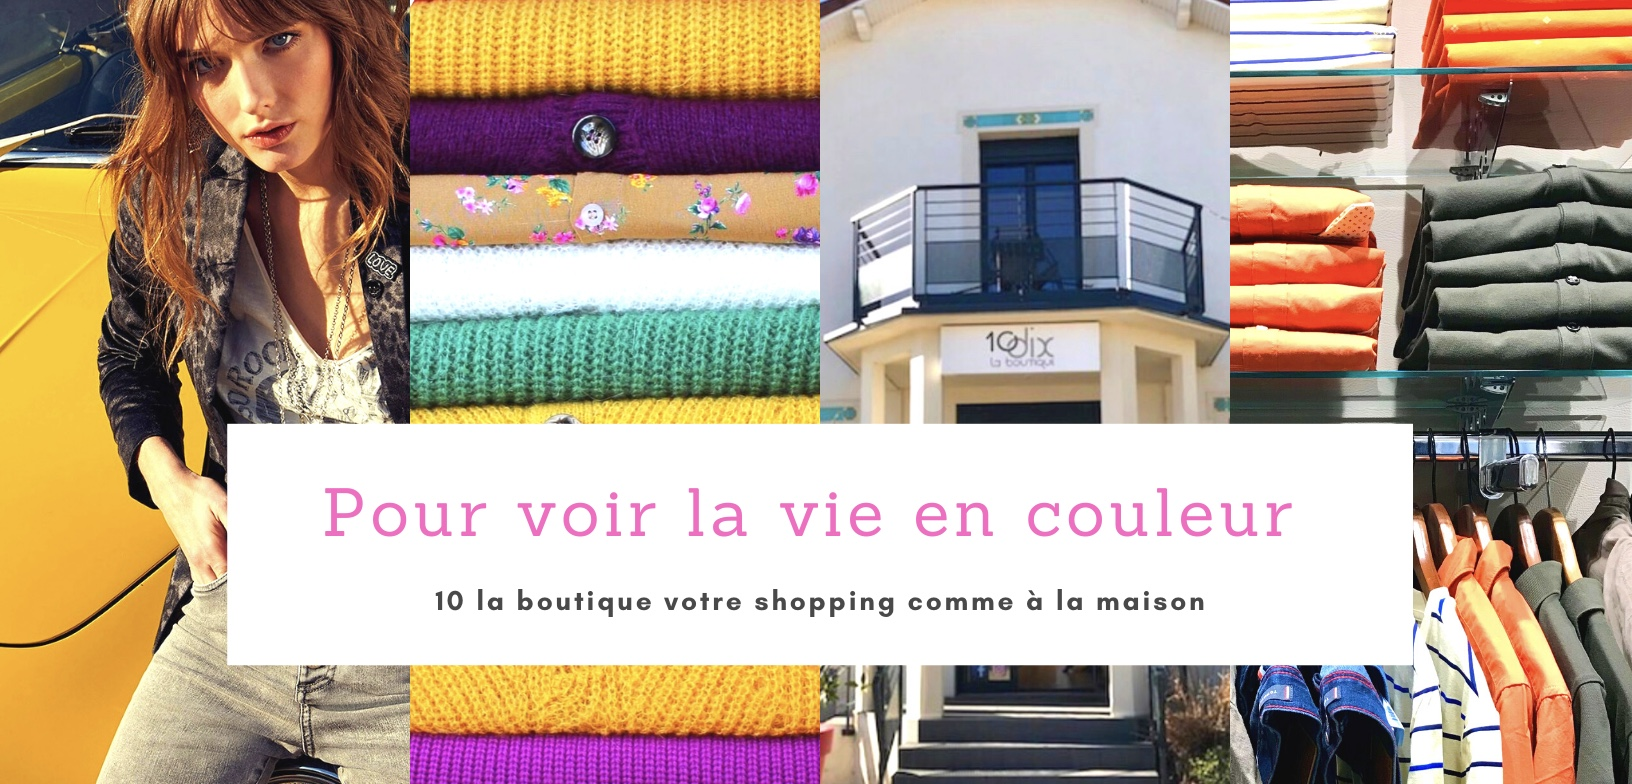 photographie de 10 la boutique